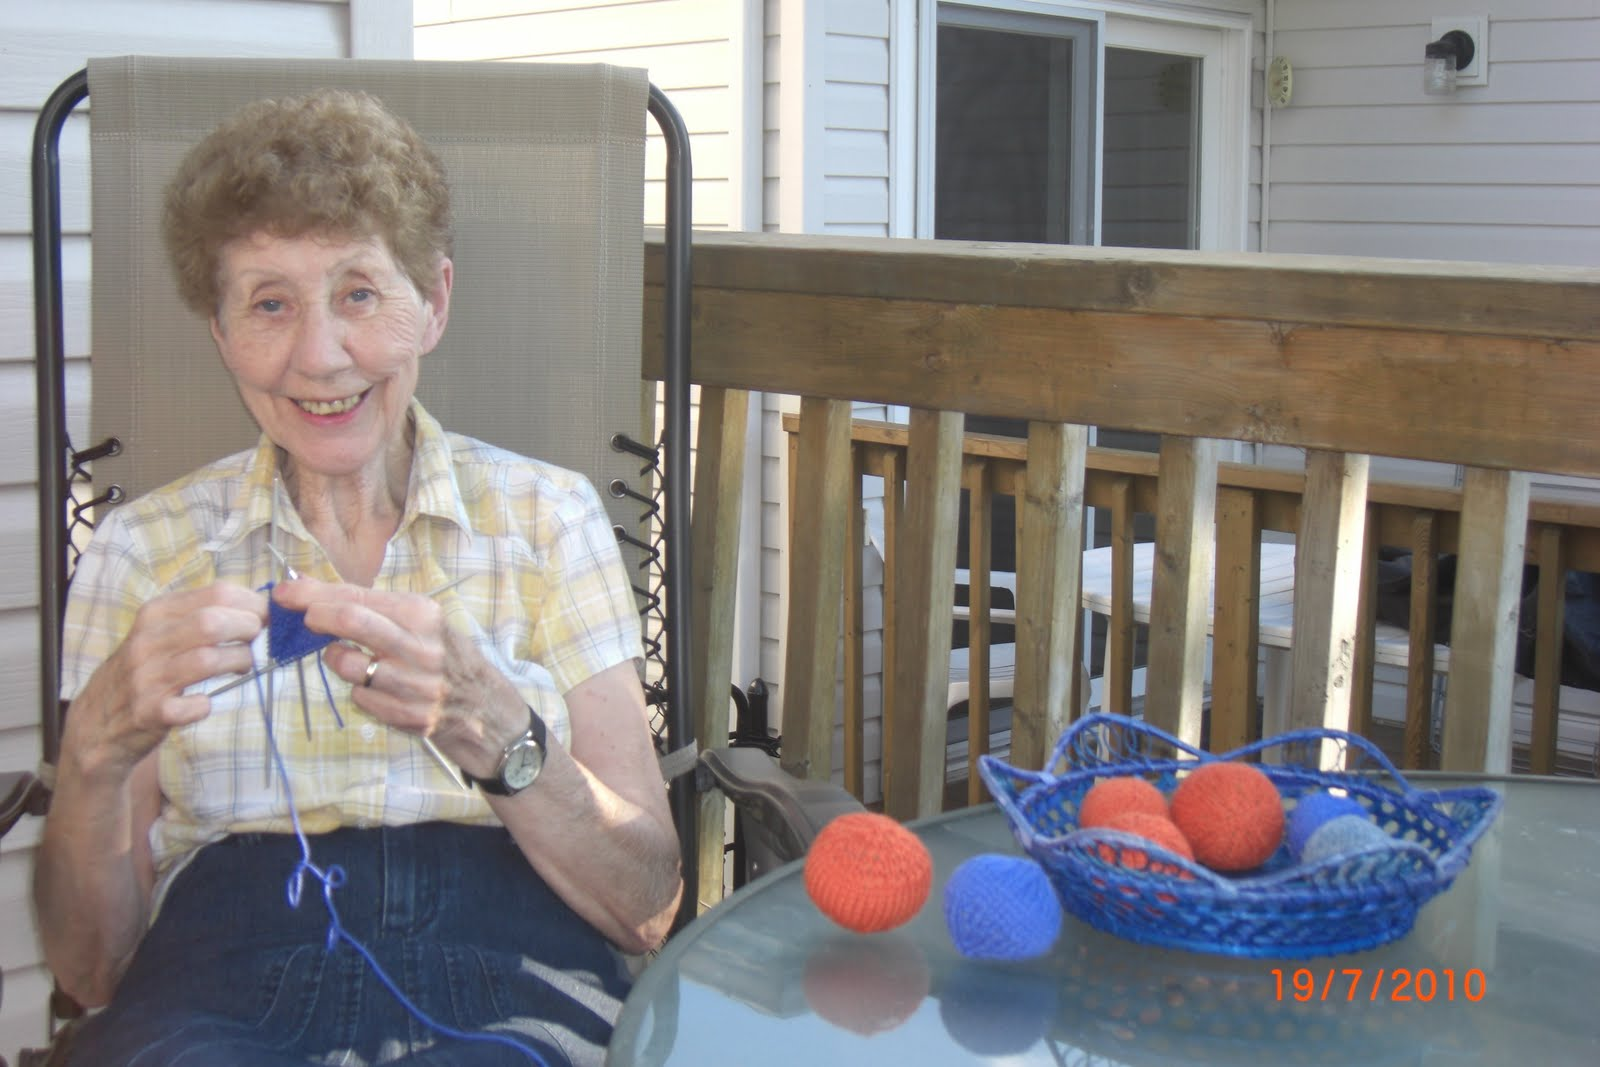 Old Grandma Knitting : Crafters for critters grandma knitting wool cat toy balls